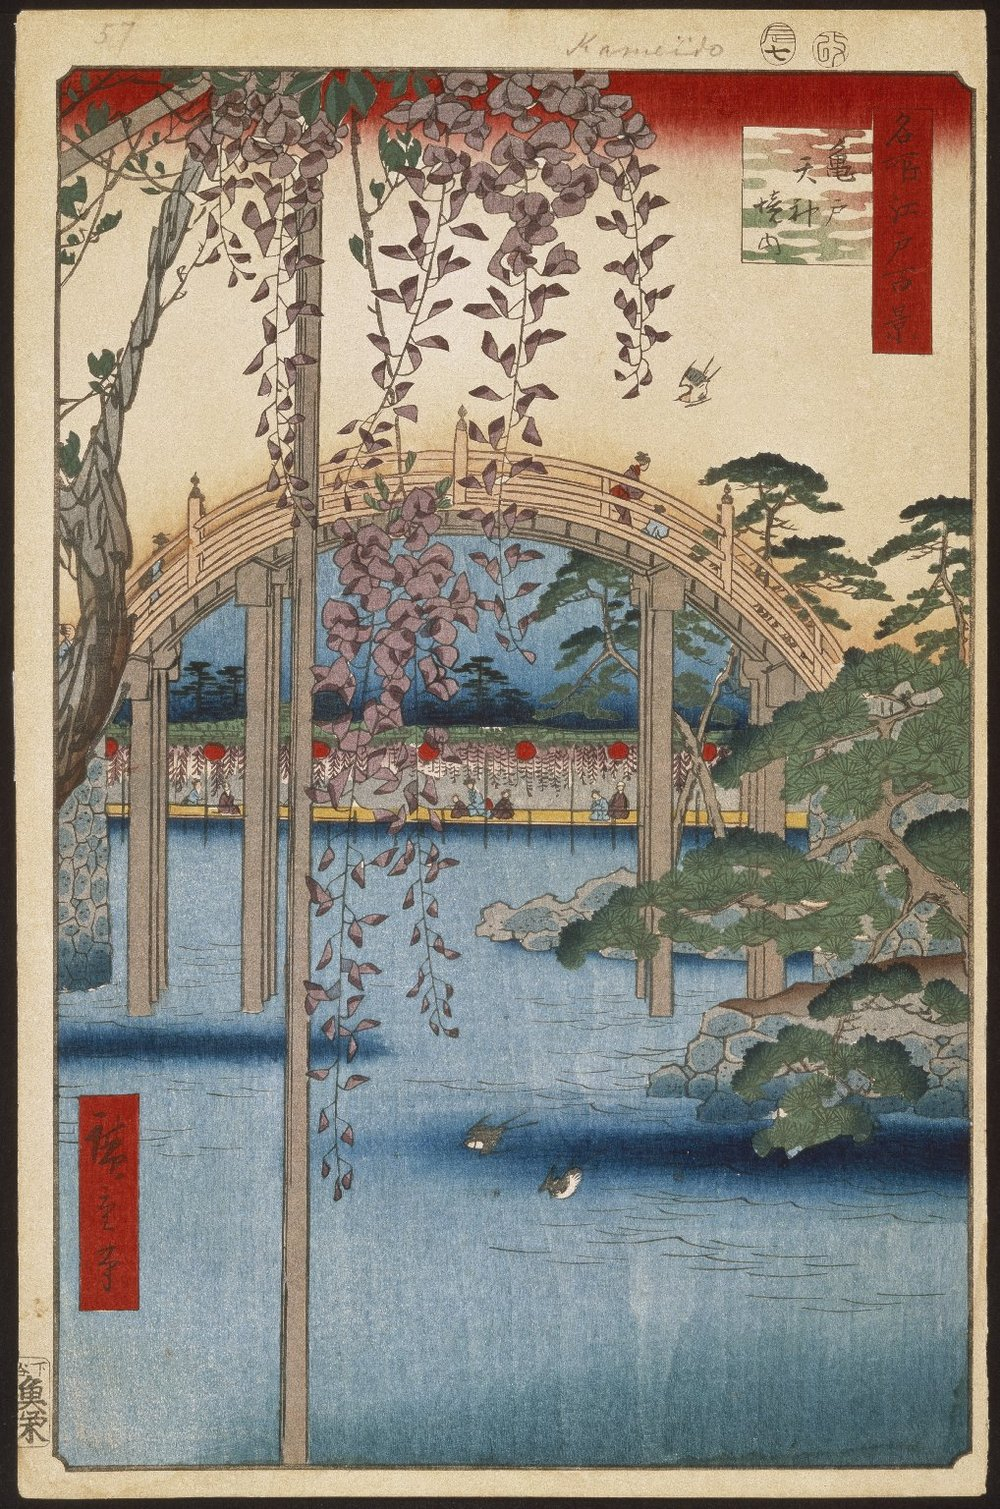 Inside Kameido Tenjin Shrine, No. 65 from One Hundred Famous Views of Edo, Woodblock Print by Utagawa Hiroshige (1797-1858).  Brooklyn Museum, gift of Anna Ferris.